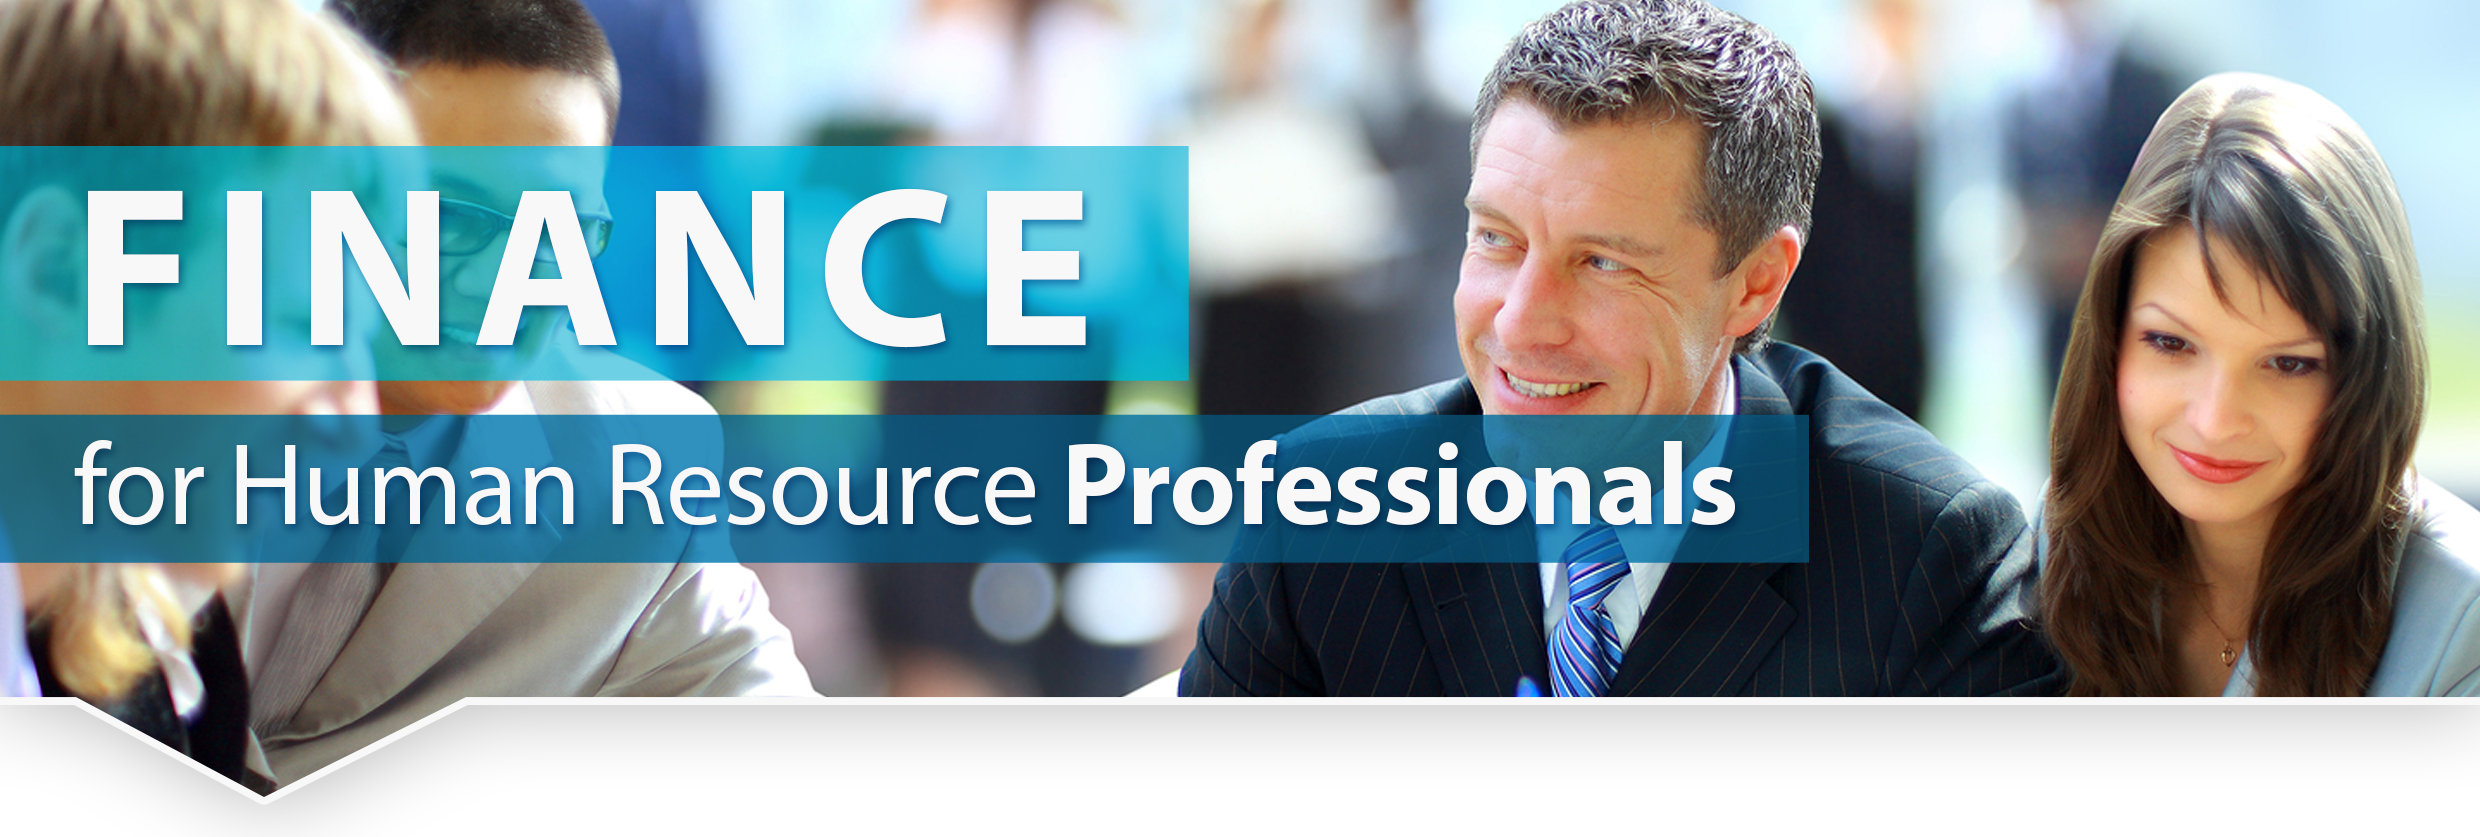 finance for human resource professionals)